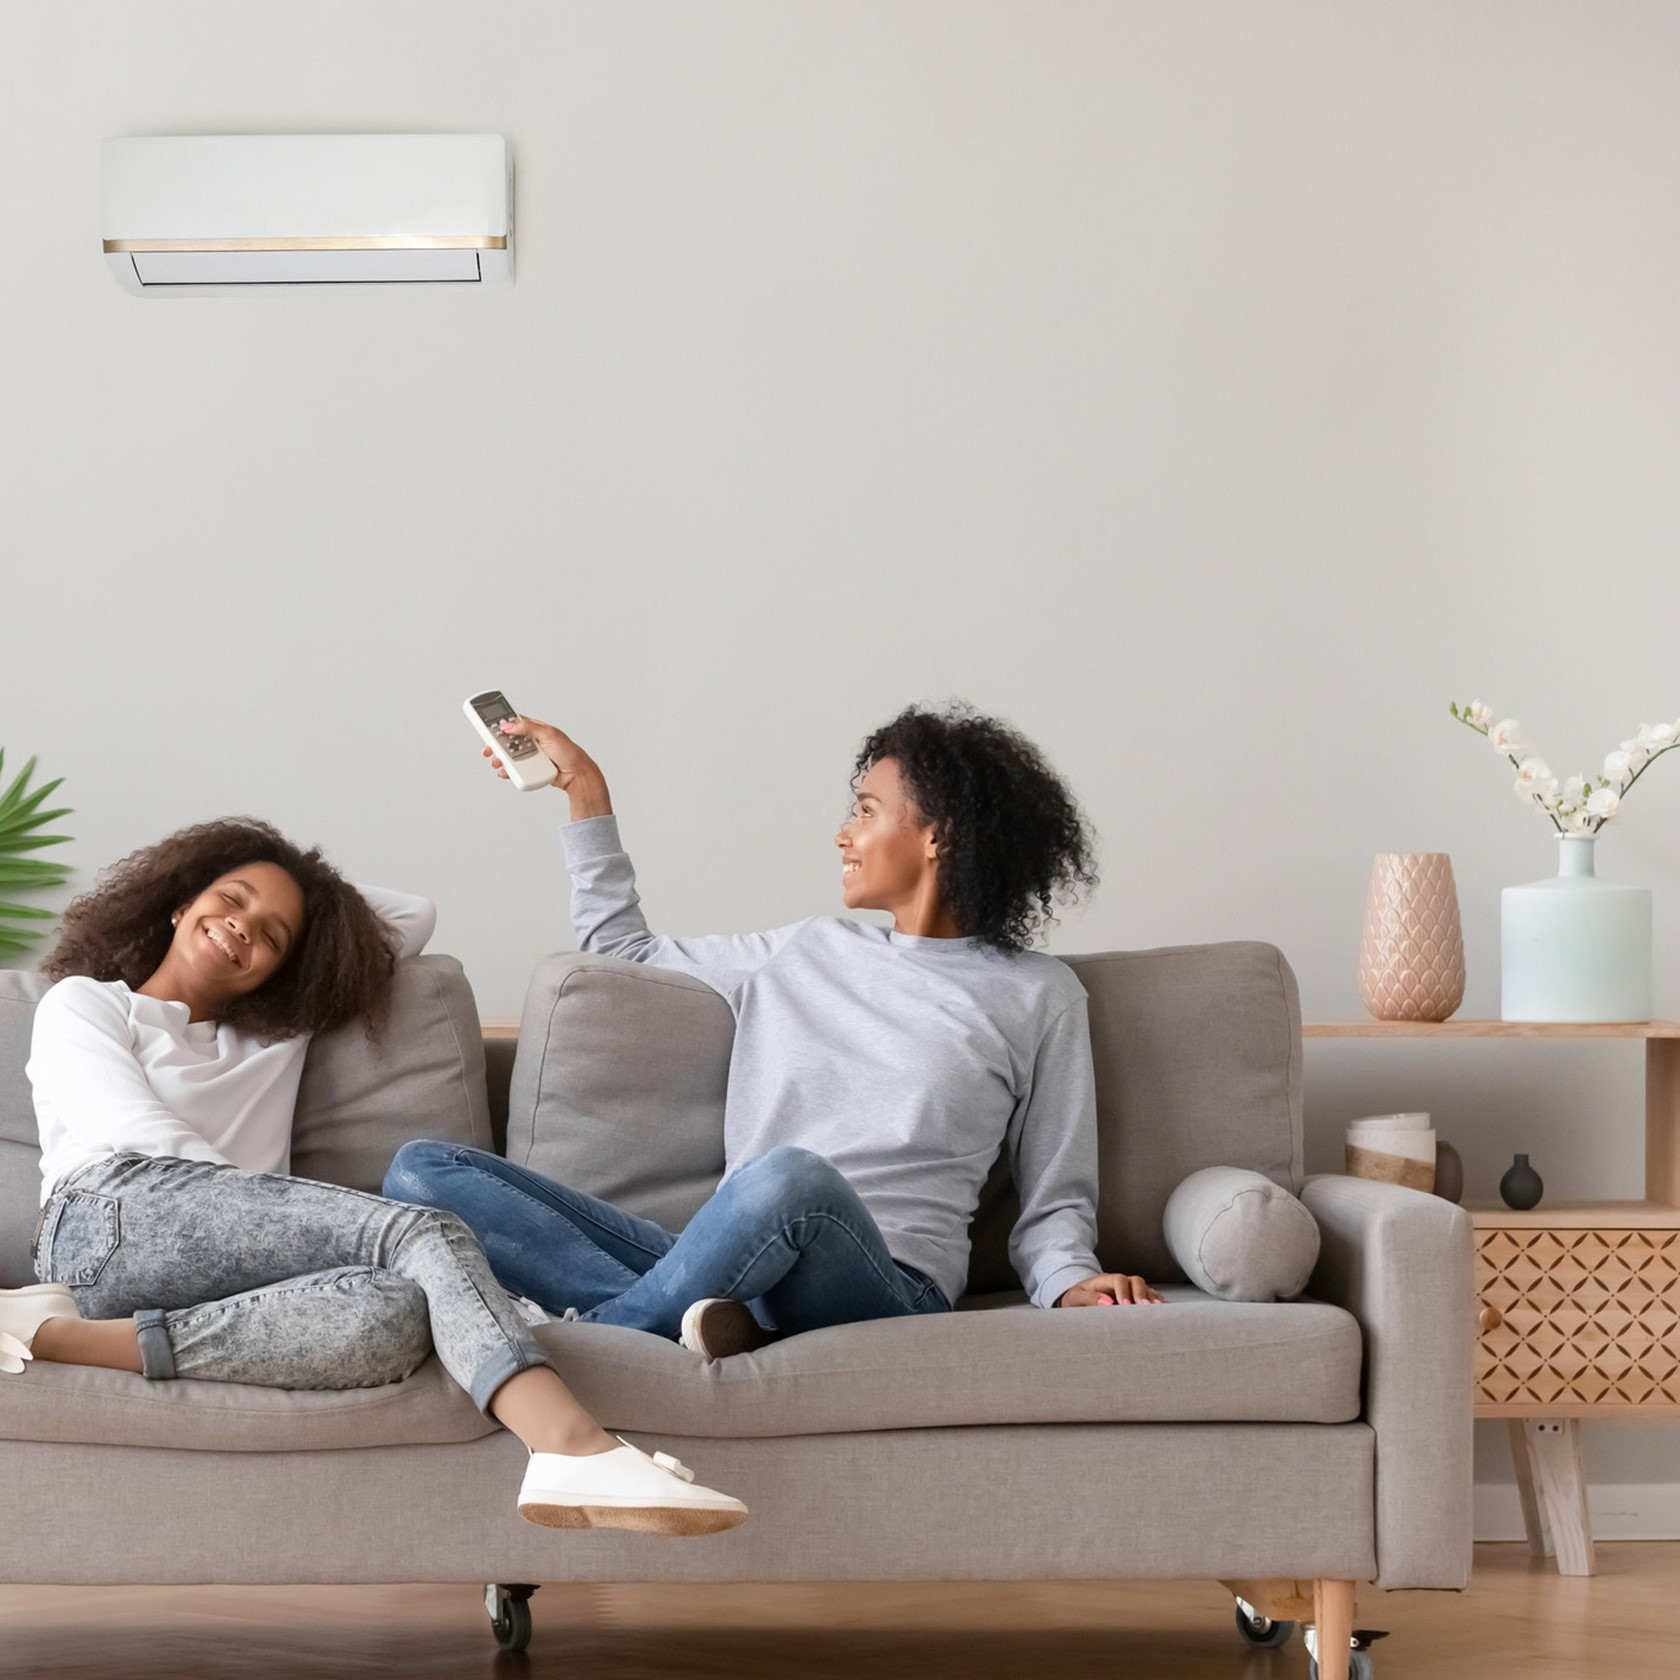 A mother and daughter sit on a couch in a modern home. The mother is operating her air conditioning unit with the remote.